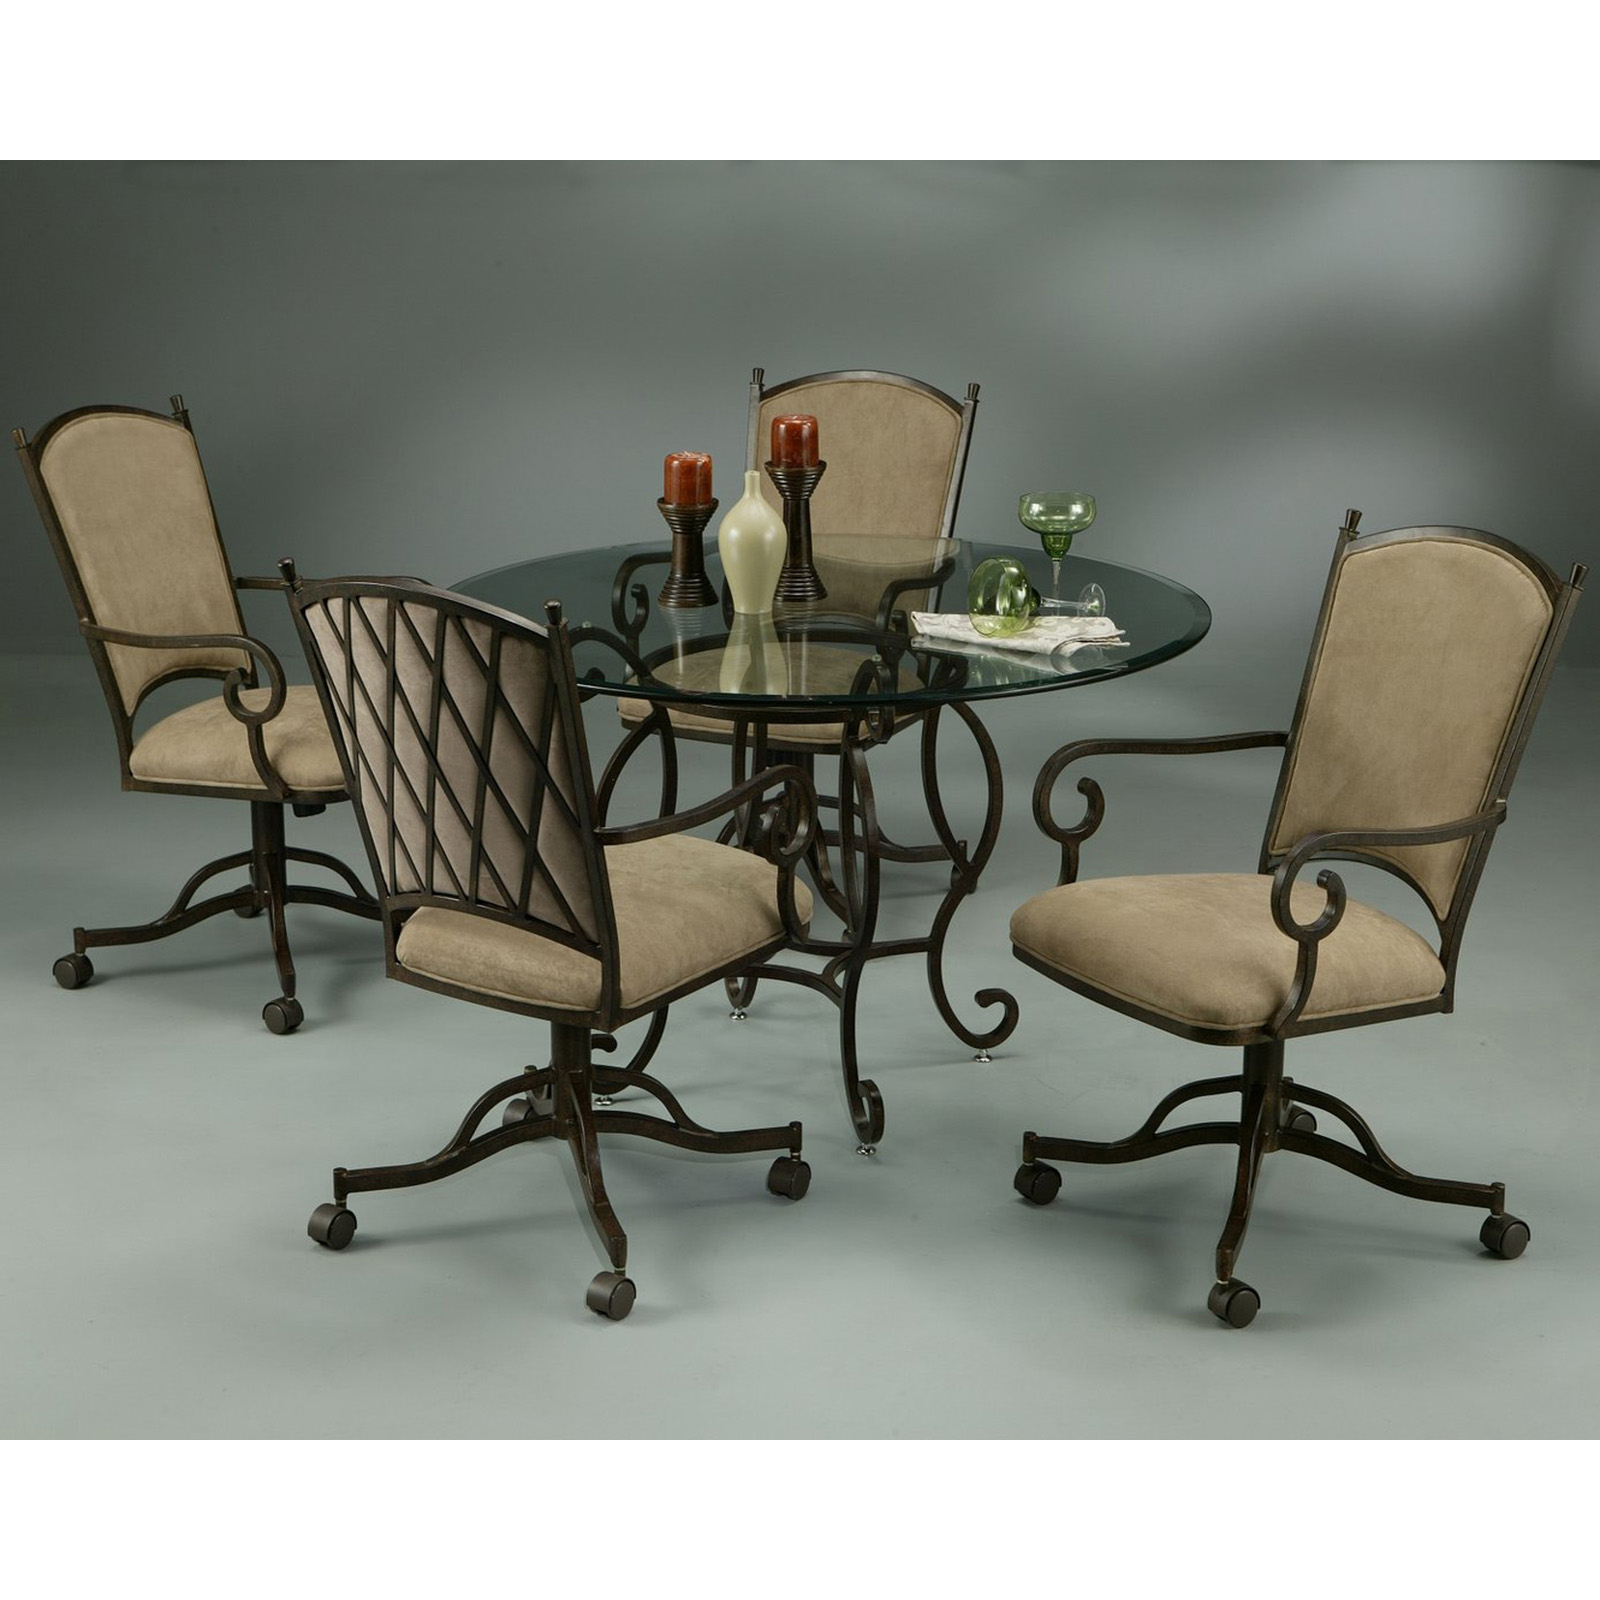 Dining Table Furniture Dining Table Set Caster Chairs  sc 1 st  Visual Hunt & Dining Table On Casters - Visual Hunt